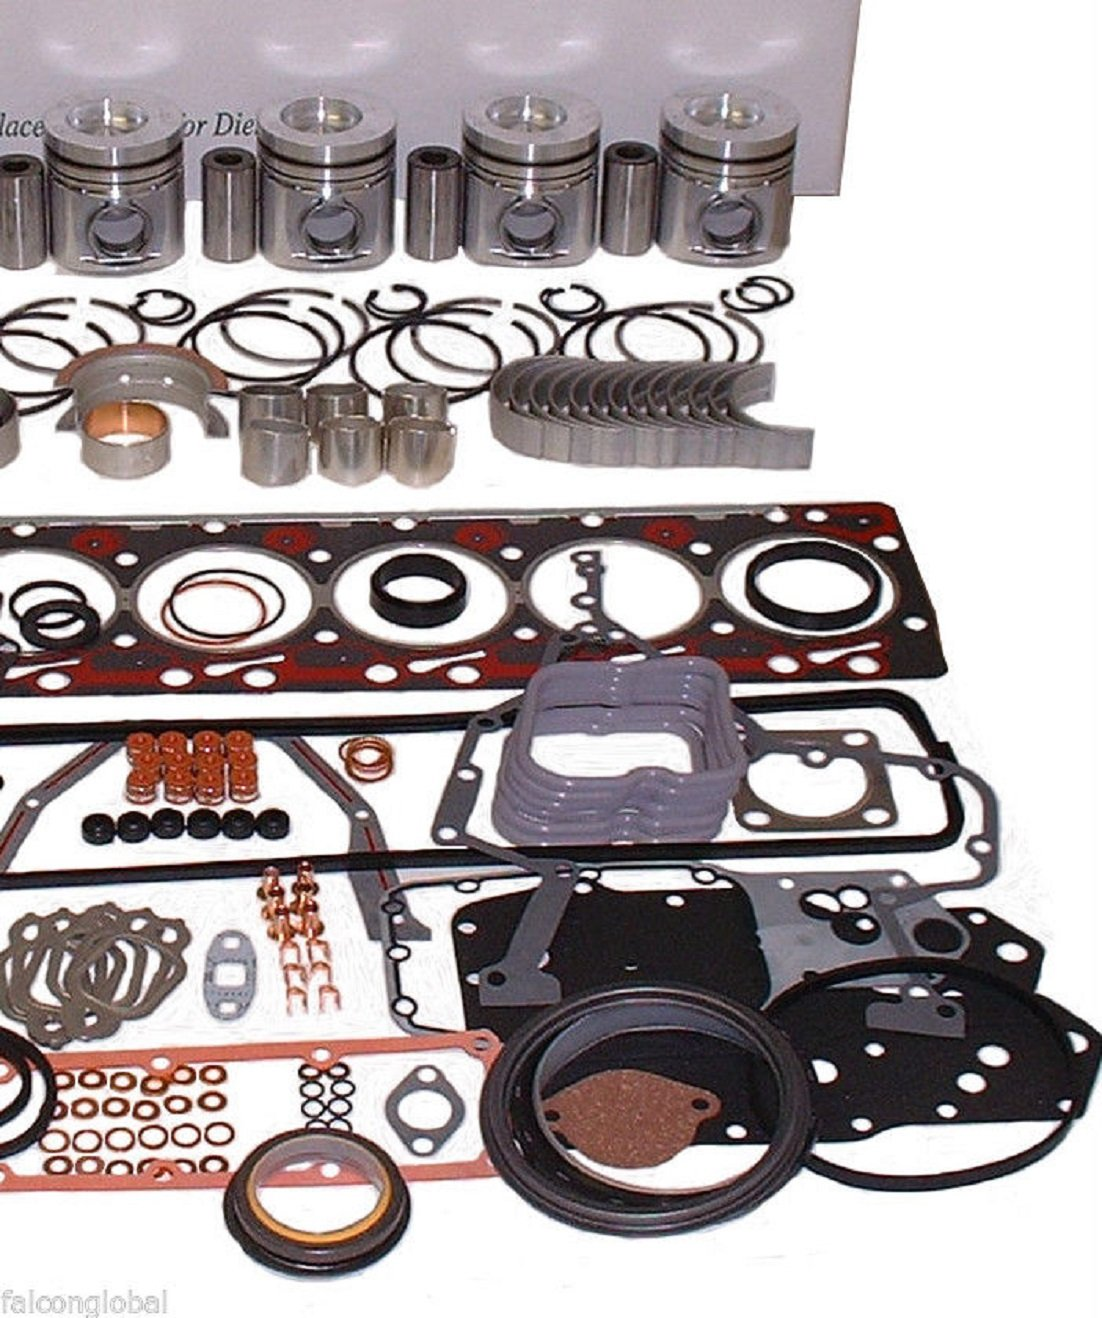 Isuzu Hyster Komatsu Engine Kit Diesel C240 Forklift Toyota 4y Timing Marks Pistons Rings Gaskets Stock Automotive